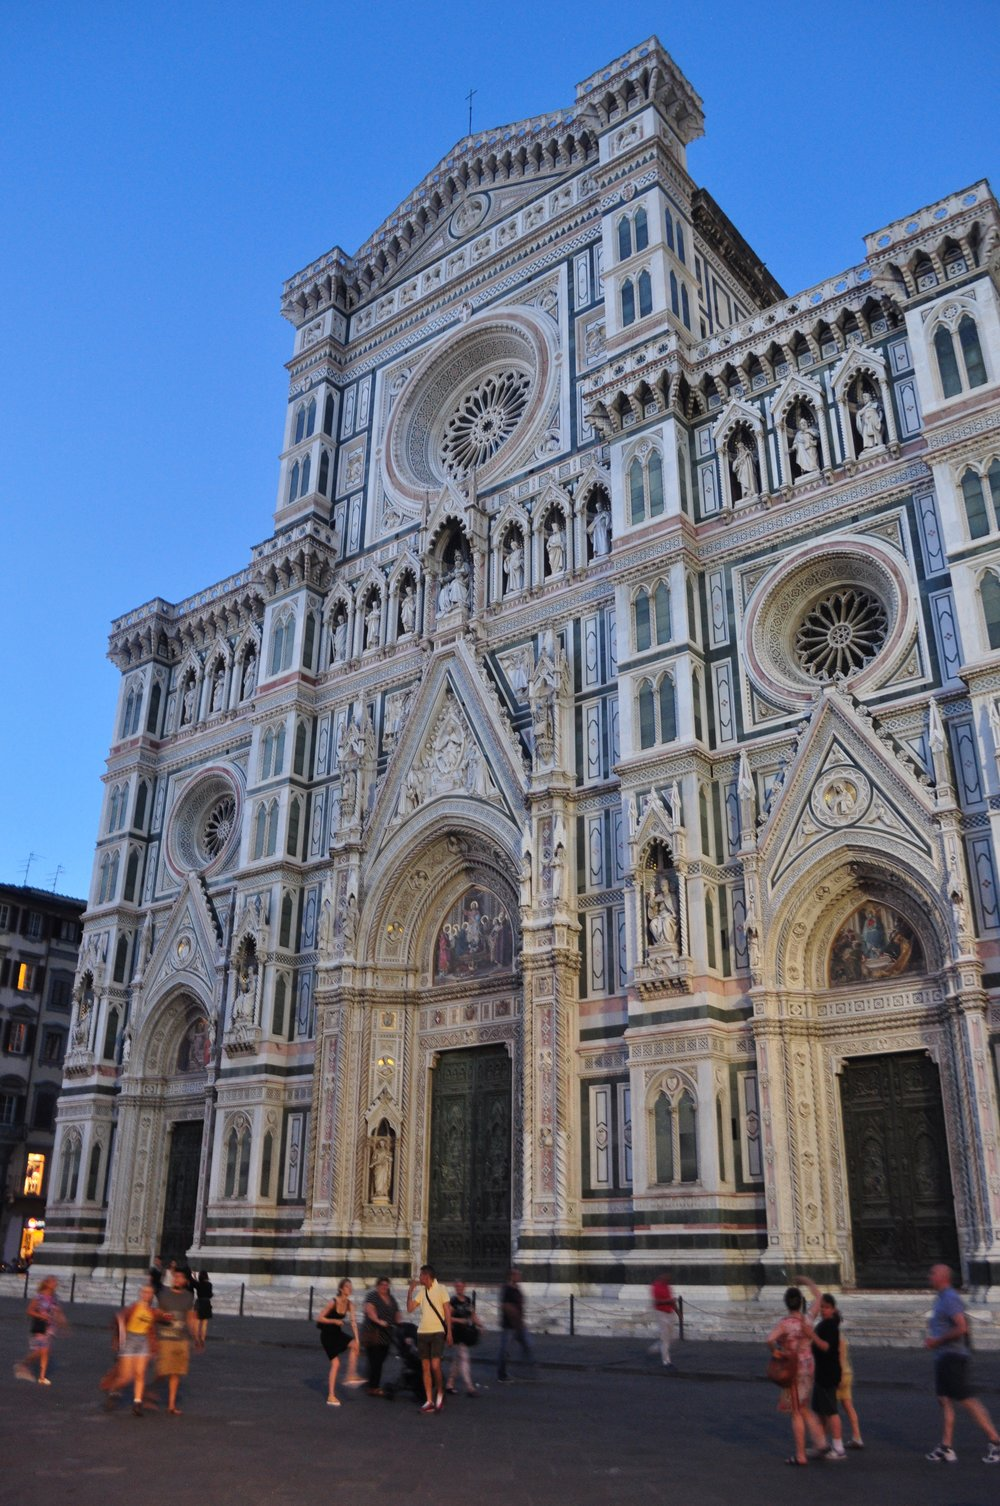 Duomo of Florence at Night - 10 Things You Must Do In Florence, Italy